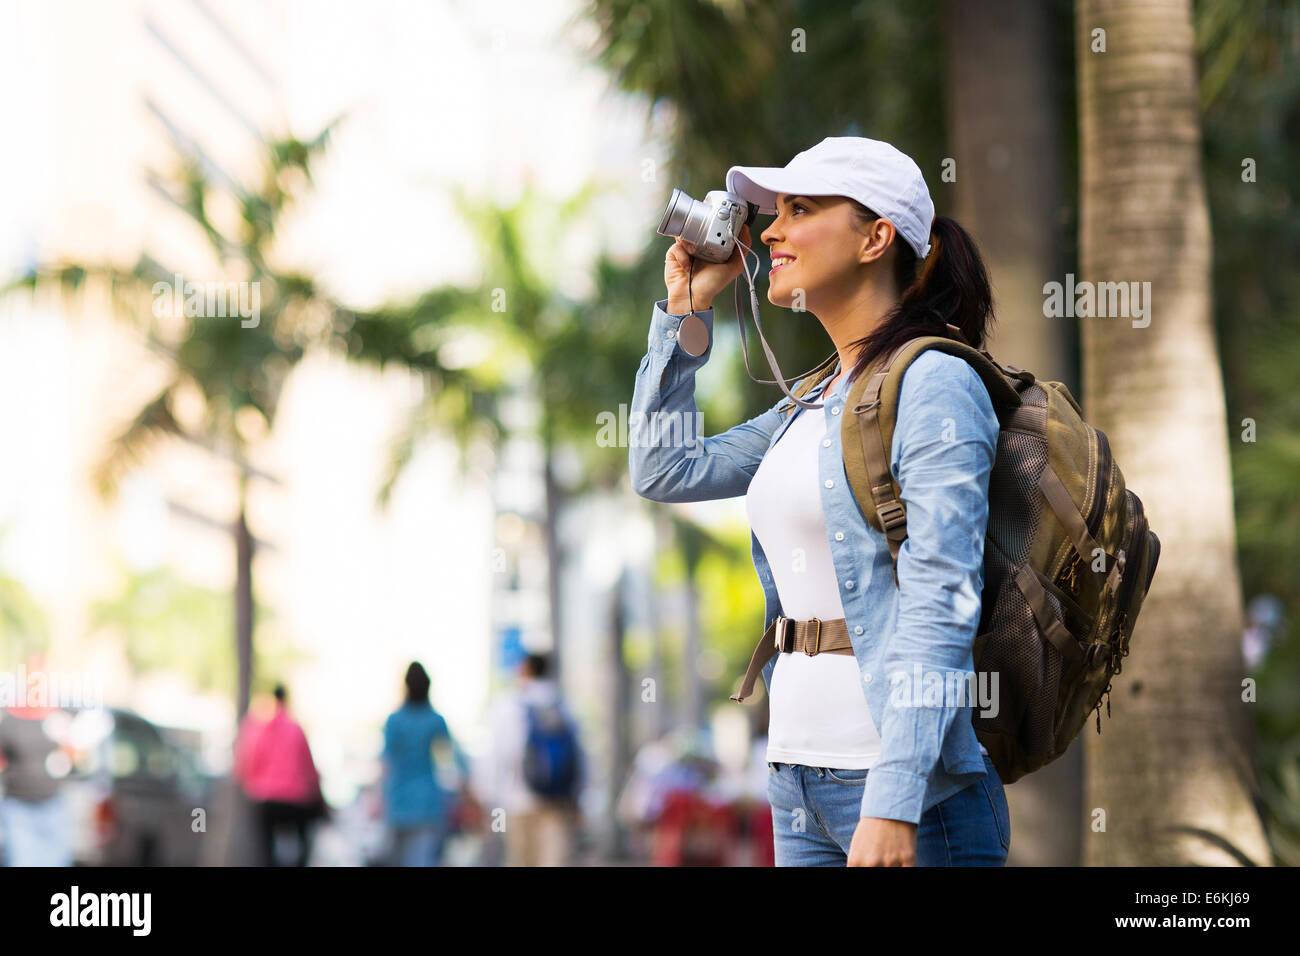 pretty female traveller taking photos in the city - Stock Image